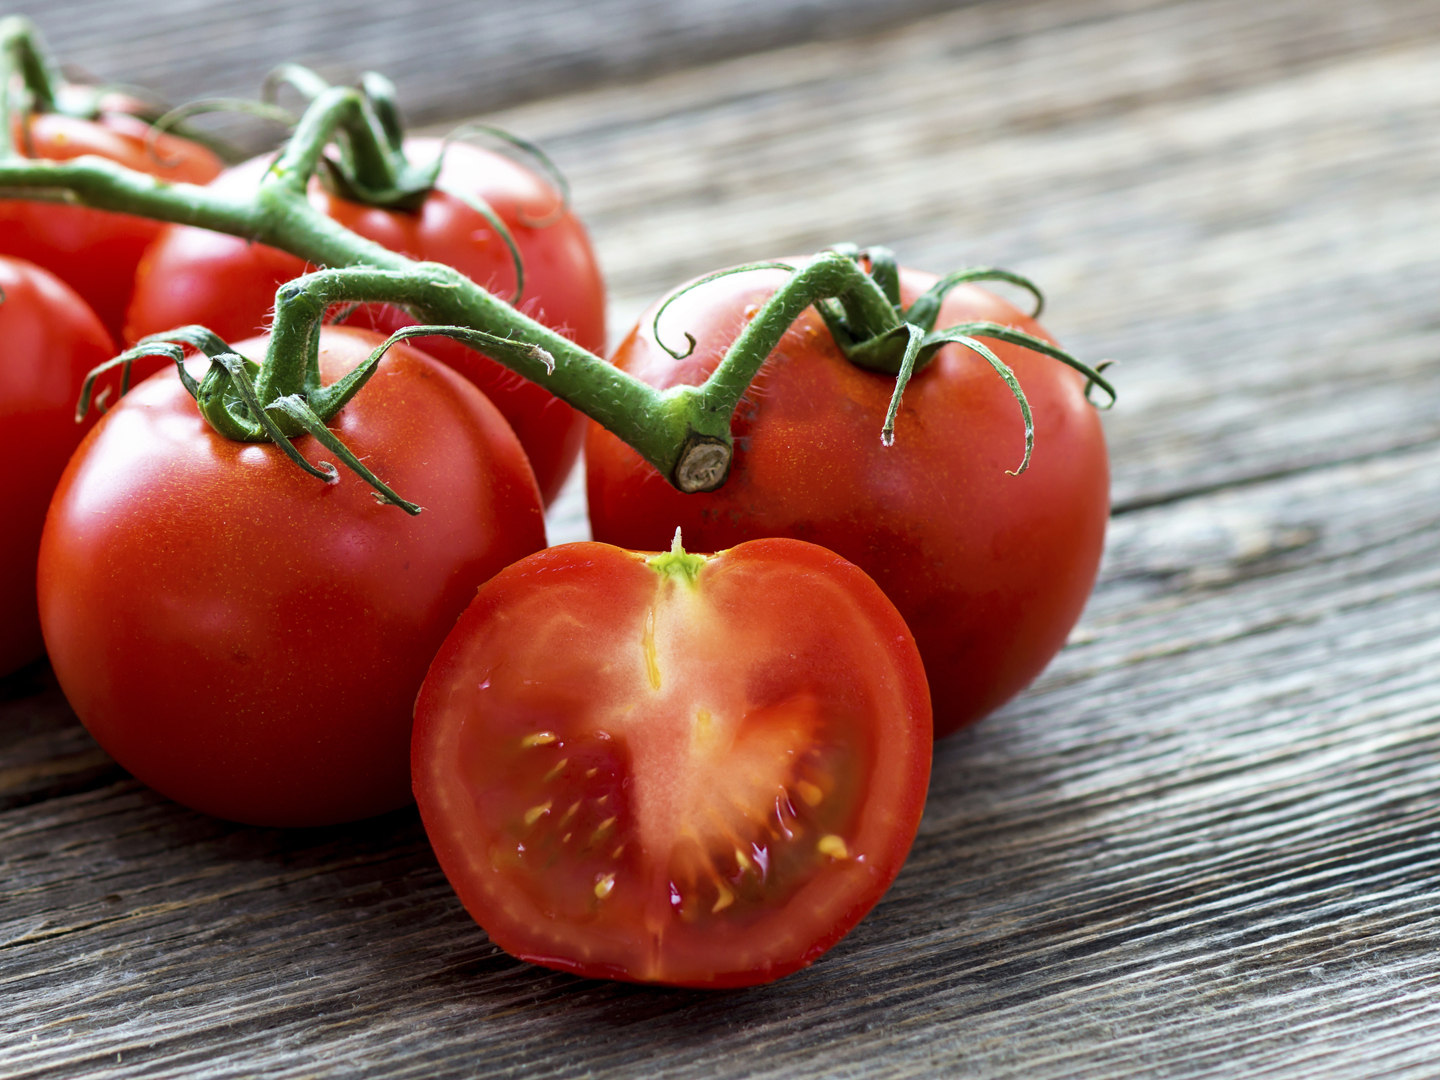 Toxic Tomatoes? - Ask Dr. Weil